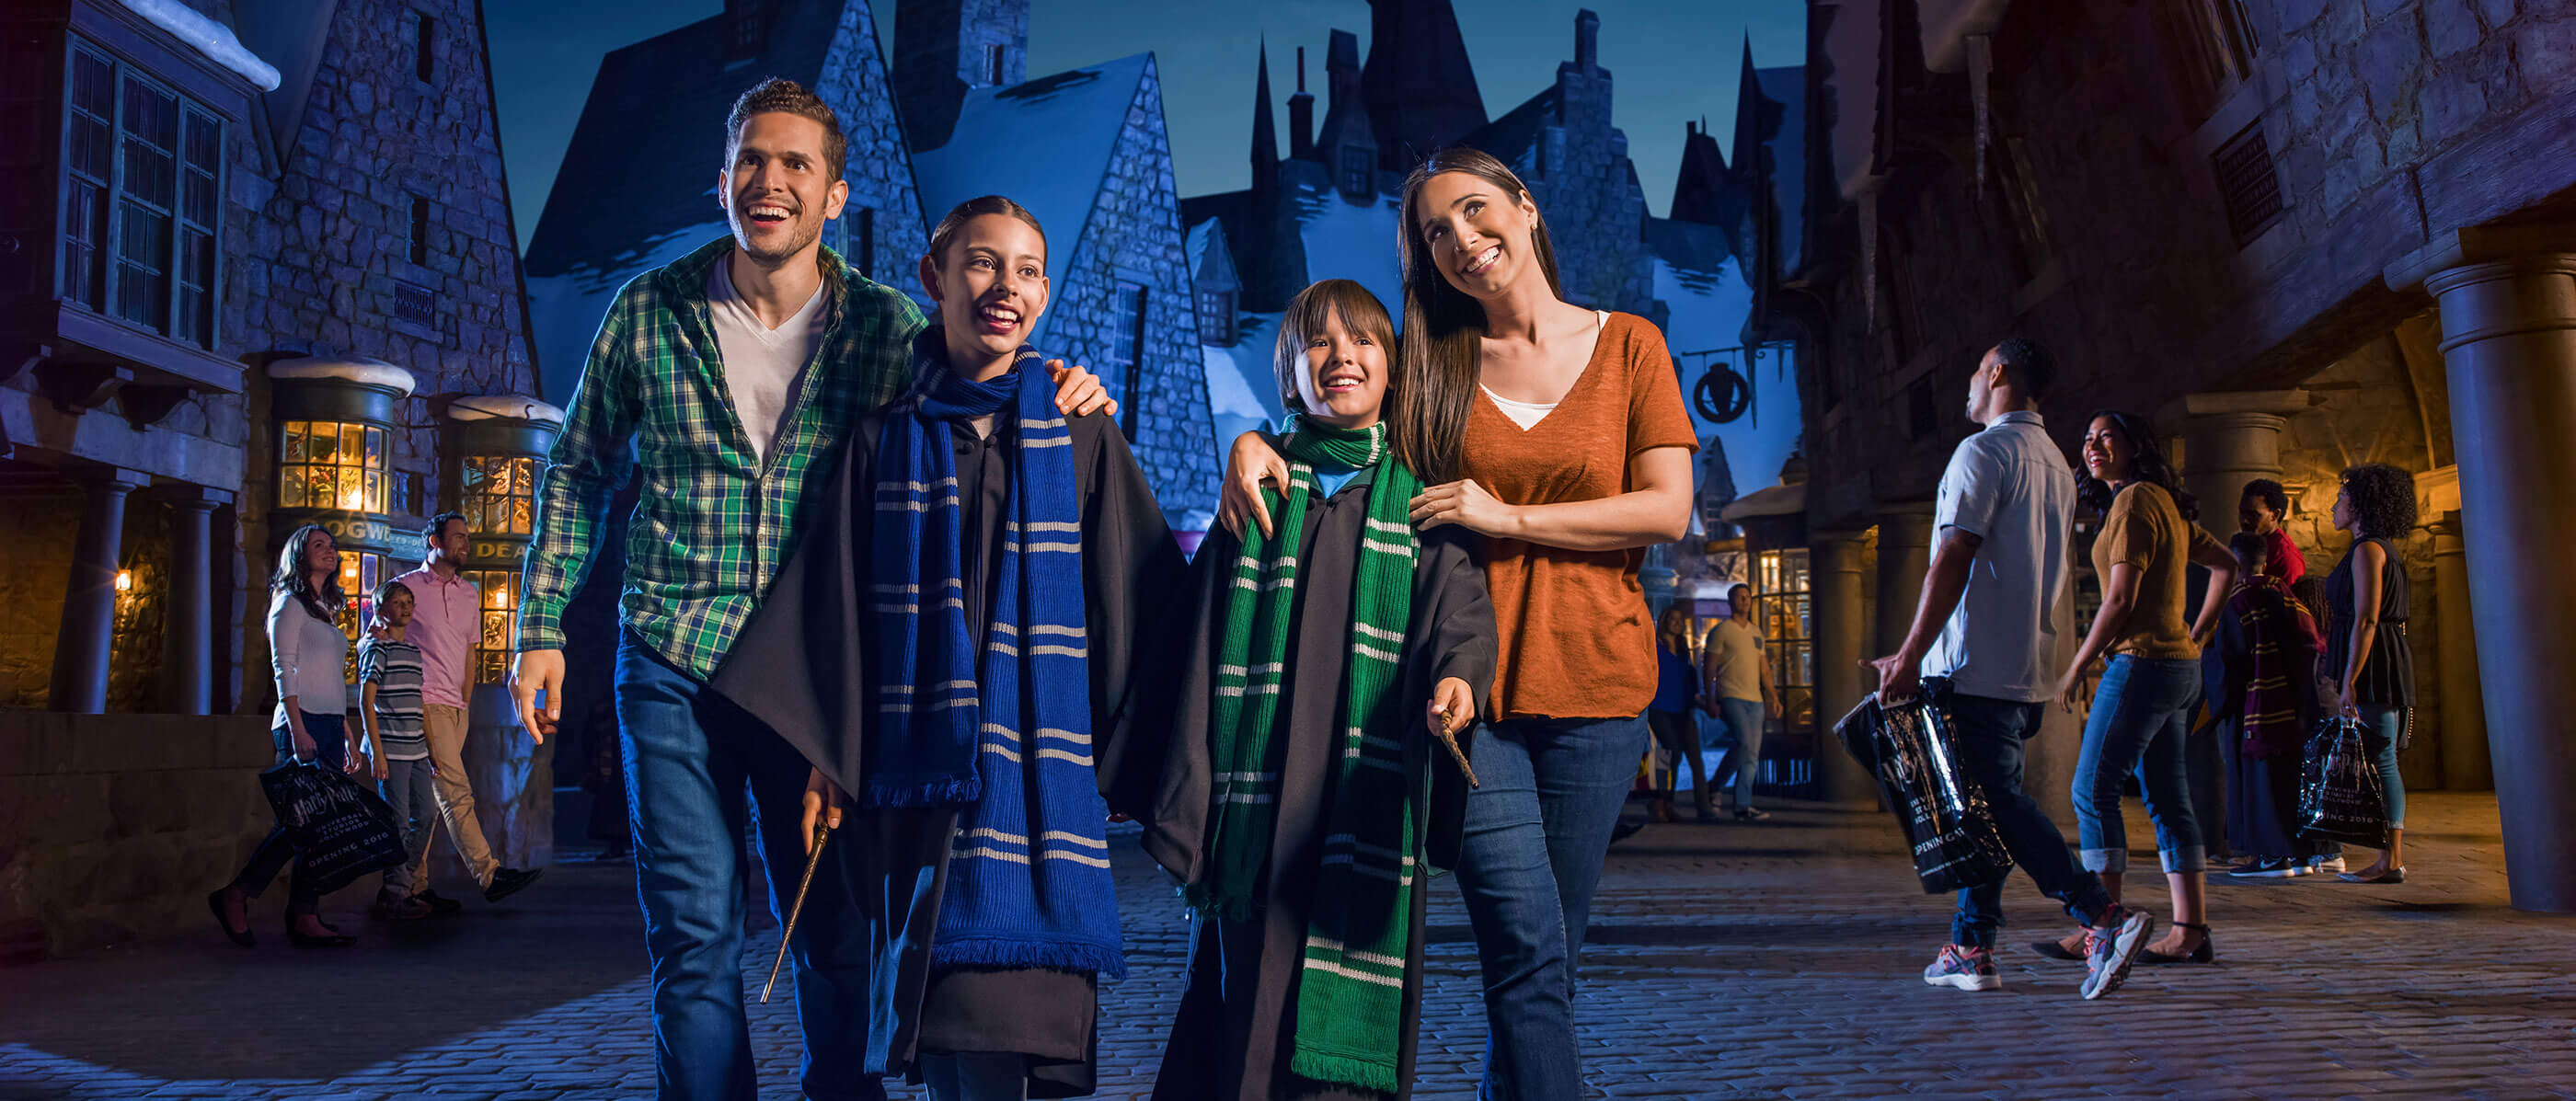 Family of four in Harry Potter house robes walking in Universal Studios